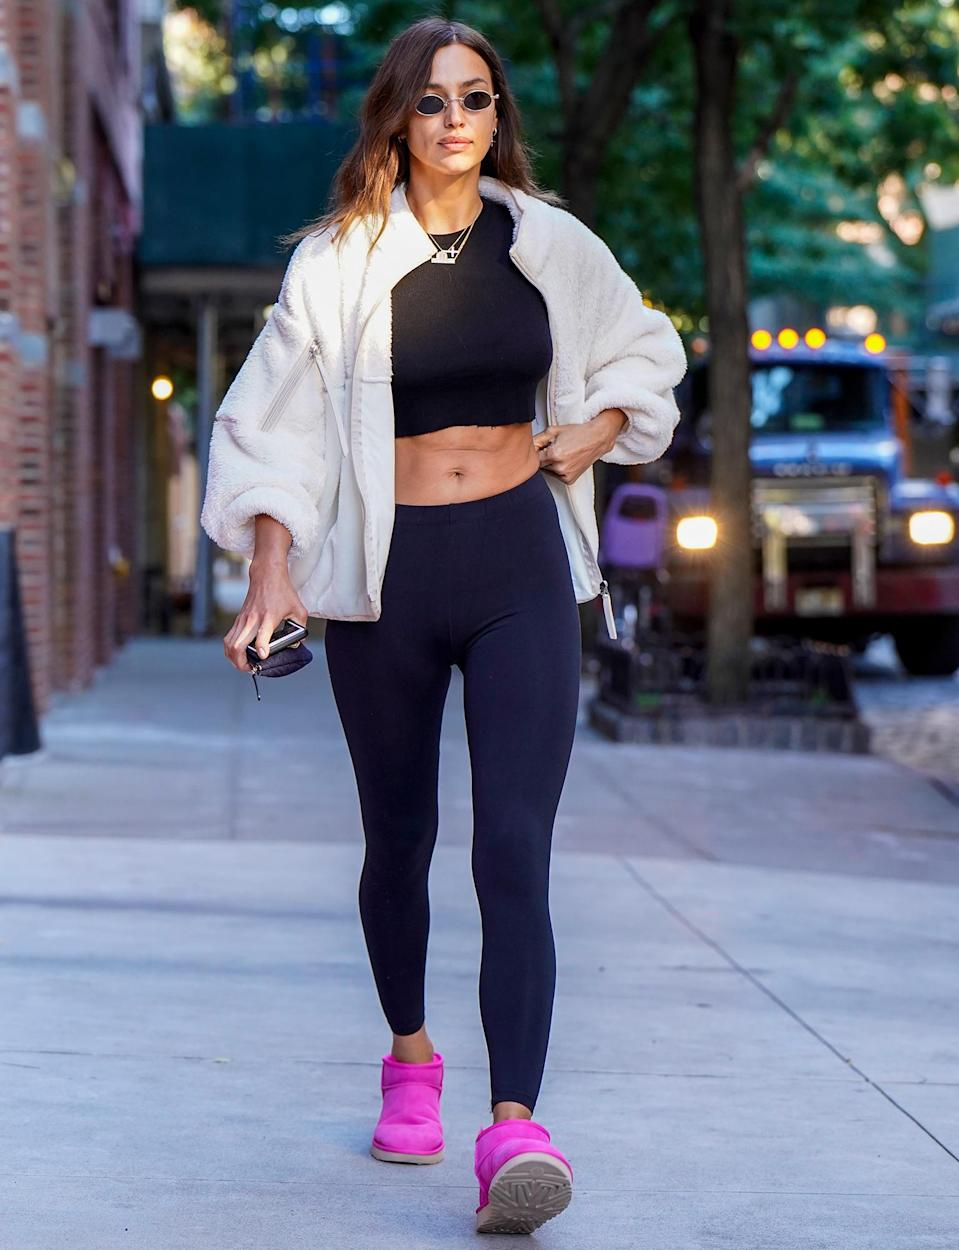 <p>Irina Shayk shows off her abs in a crop top while out on Thursday in N.Y.C.</p>